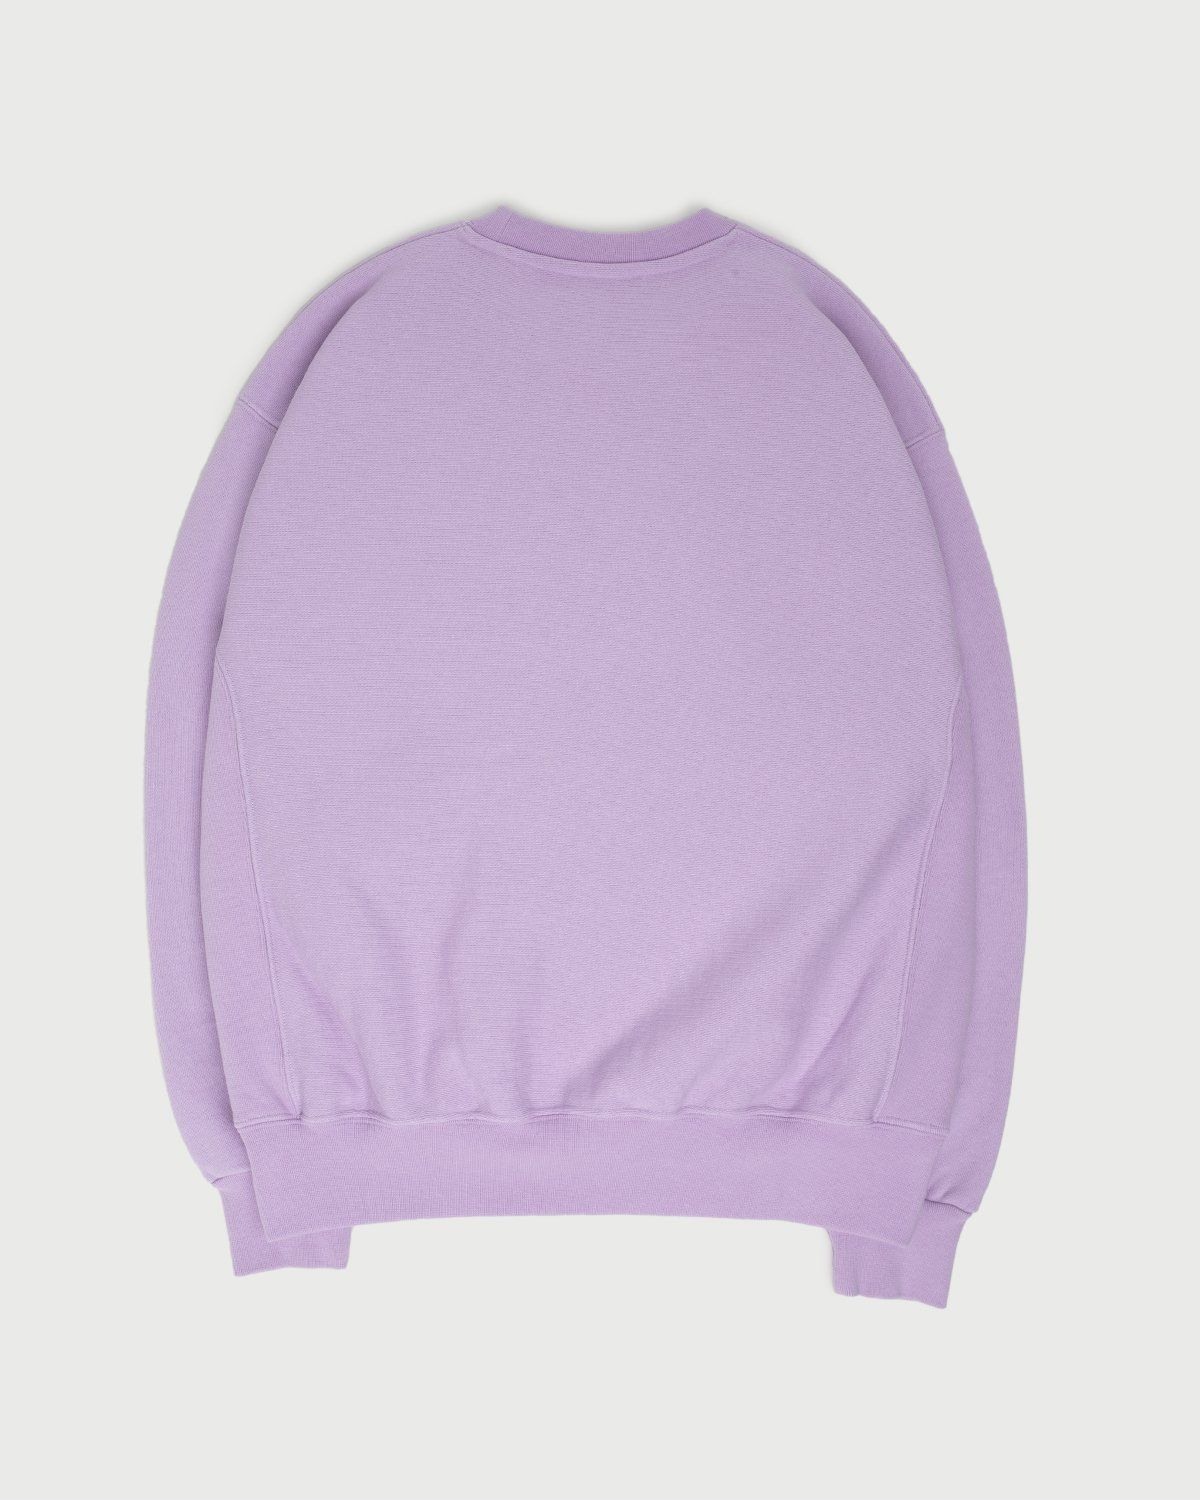 Aries - Embroidered Temple Sweatshirt Unisex Orchid - Image 3